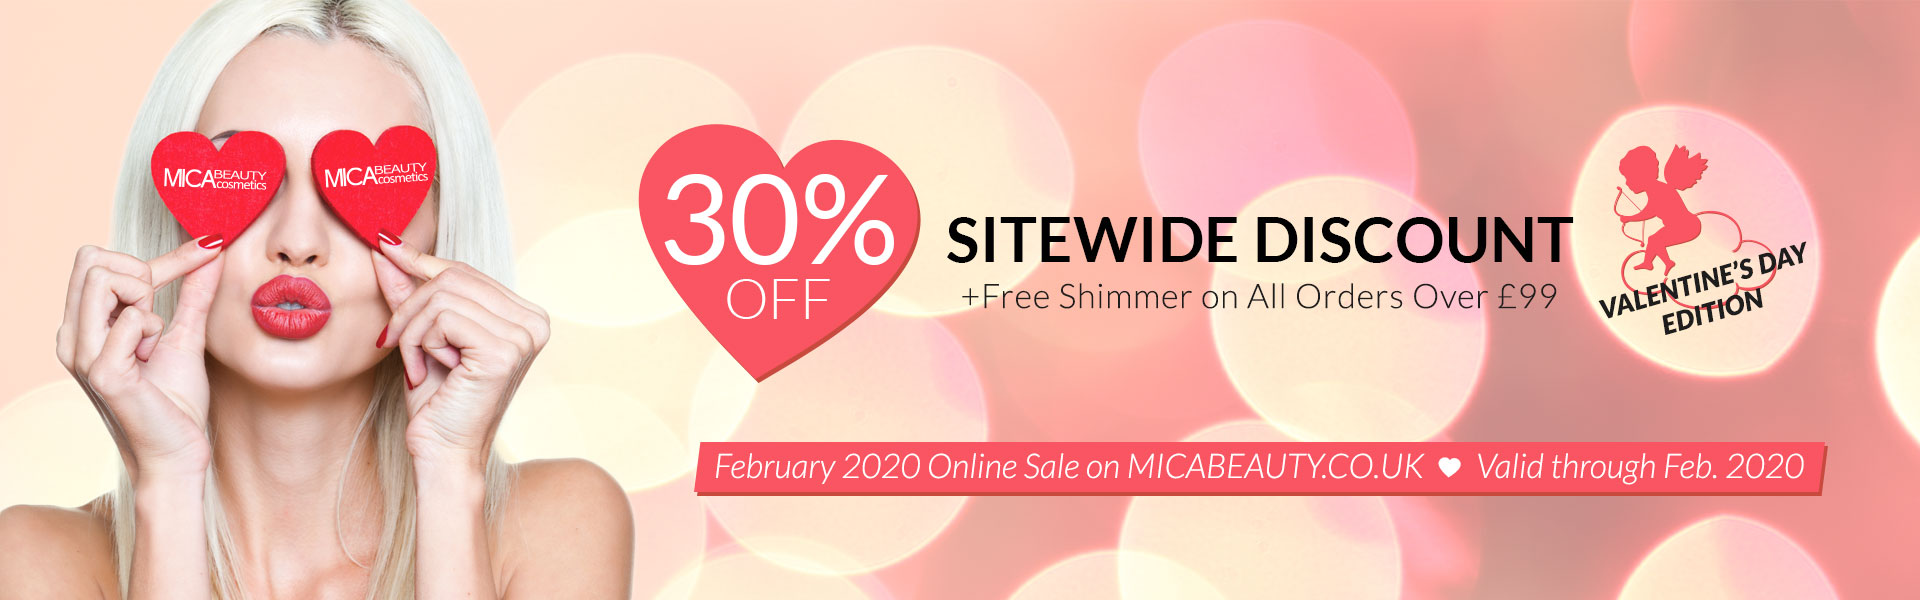 February 2020 Online Sale